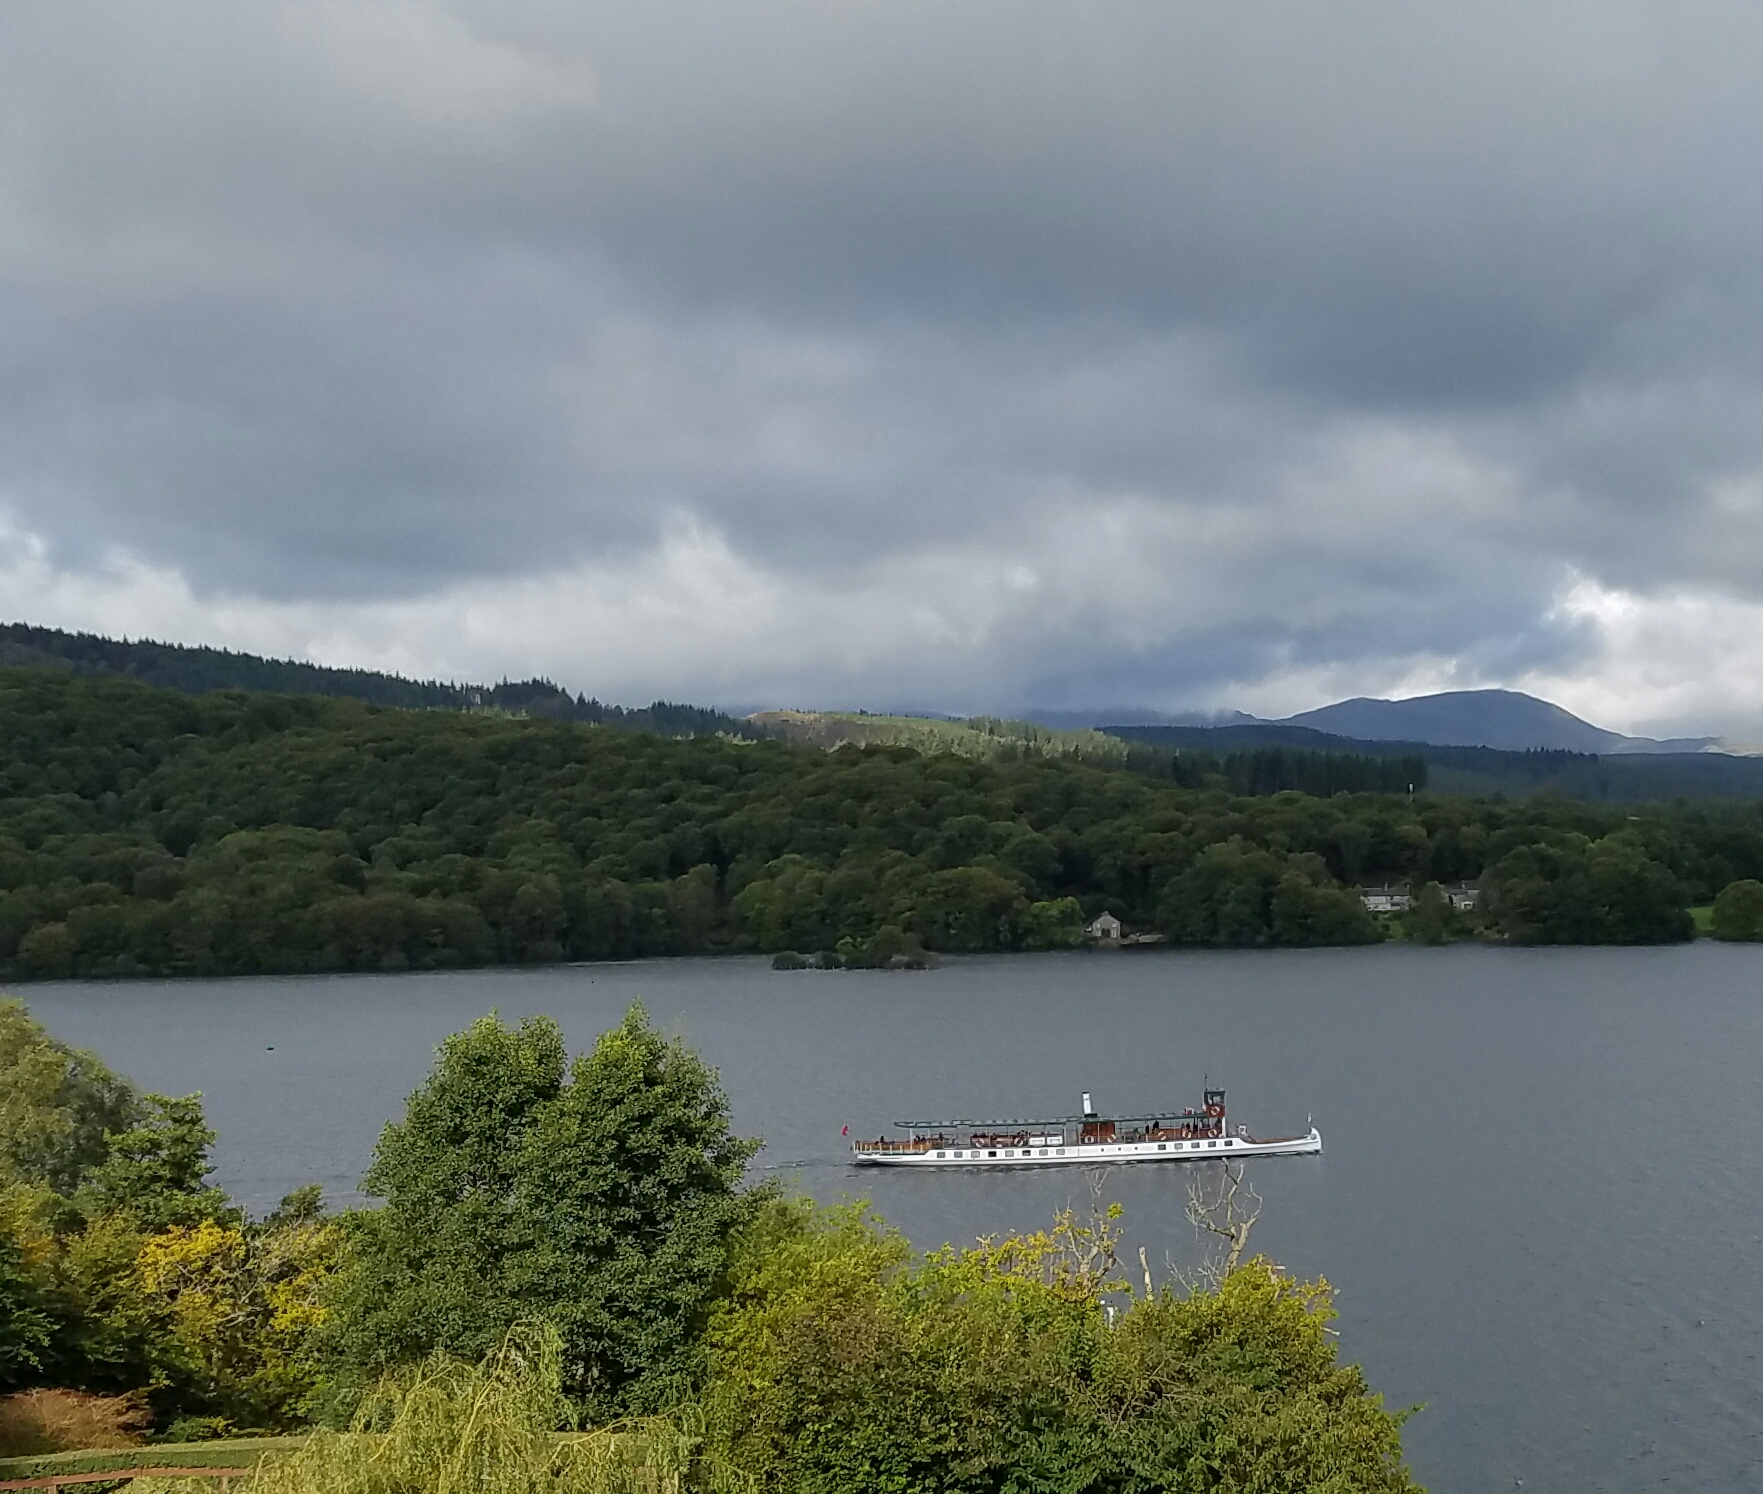 England – Grasmere, The Swan, and No Name Roads